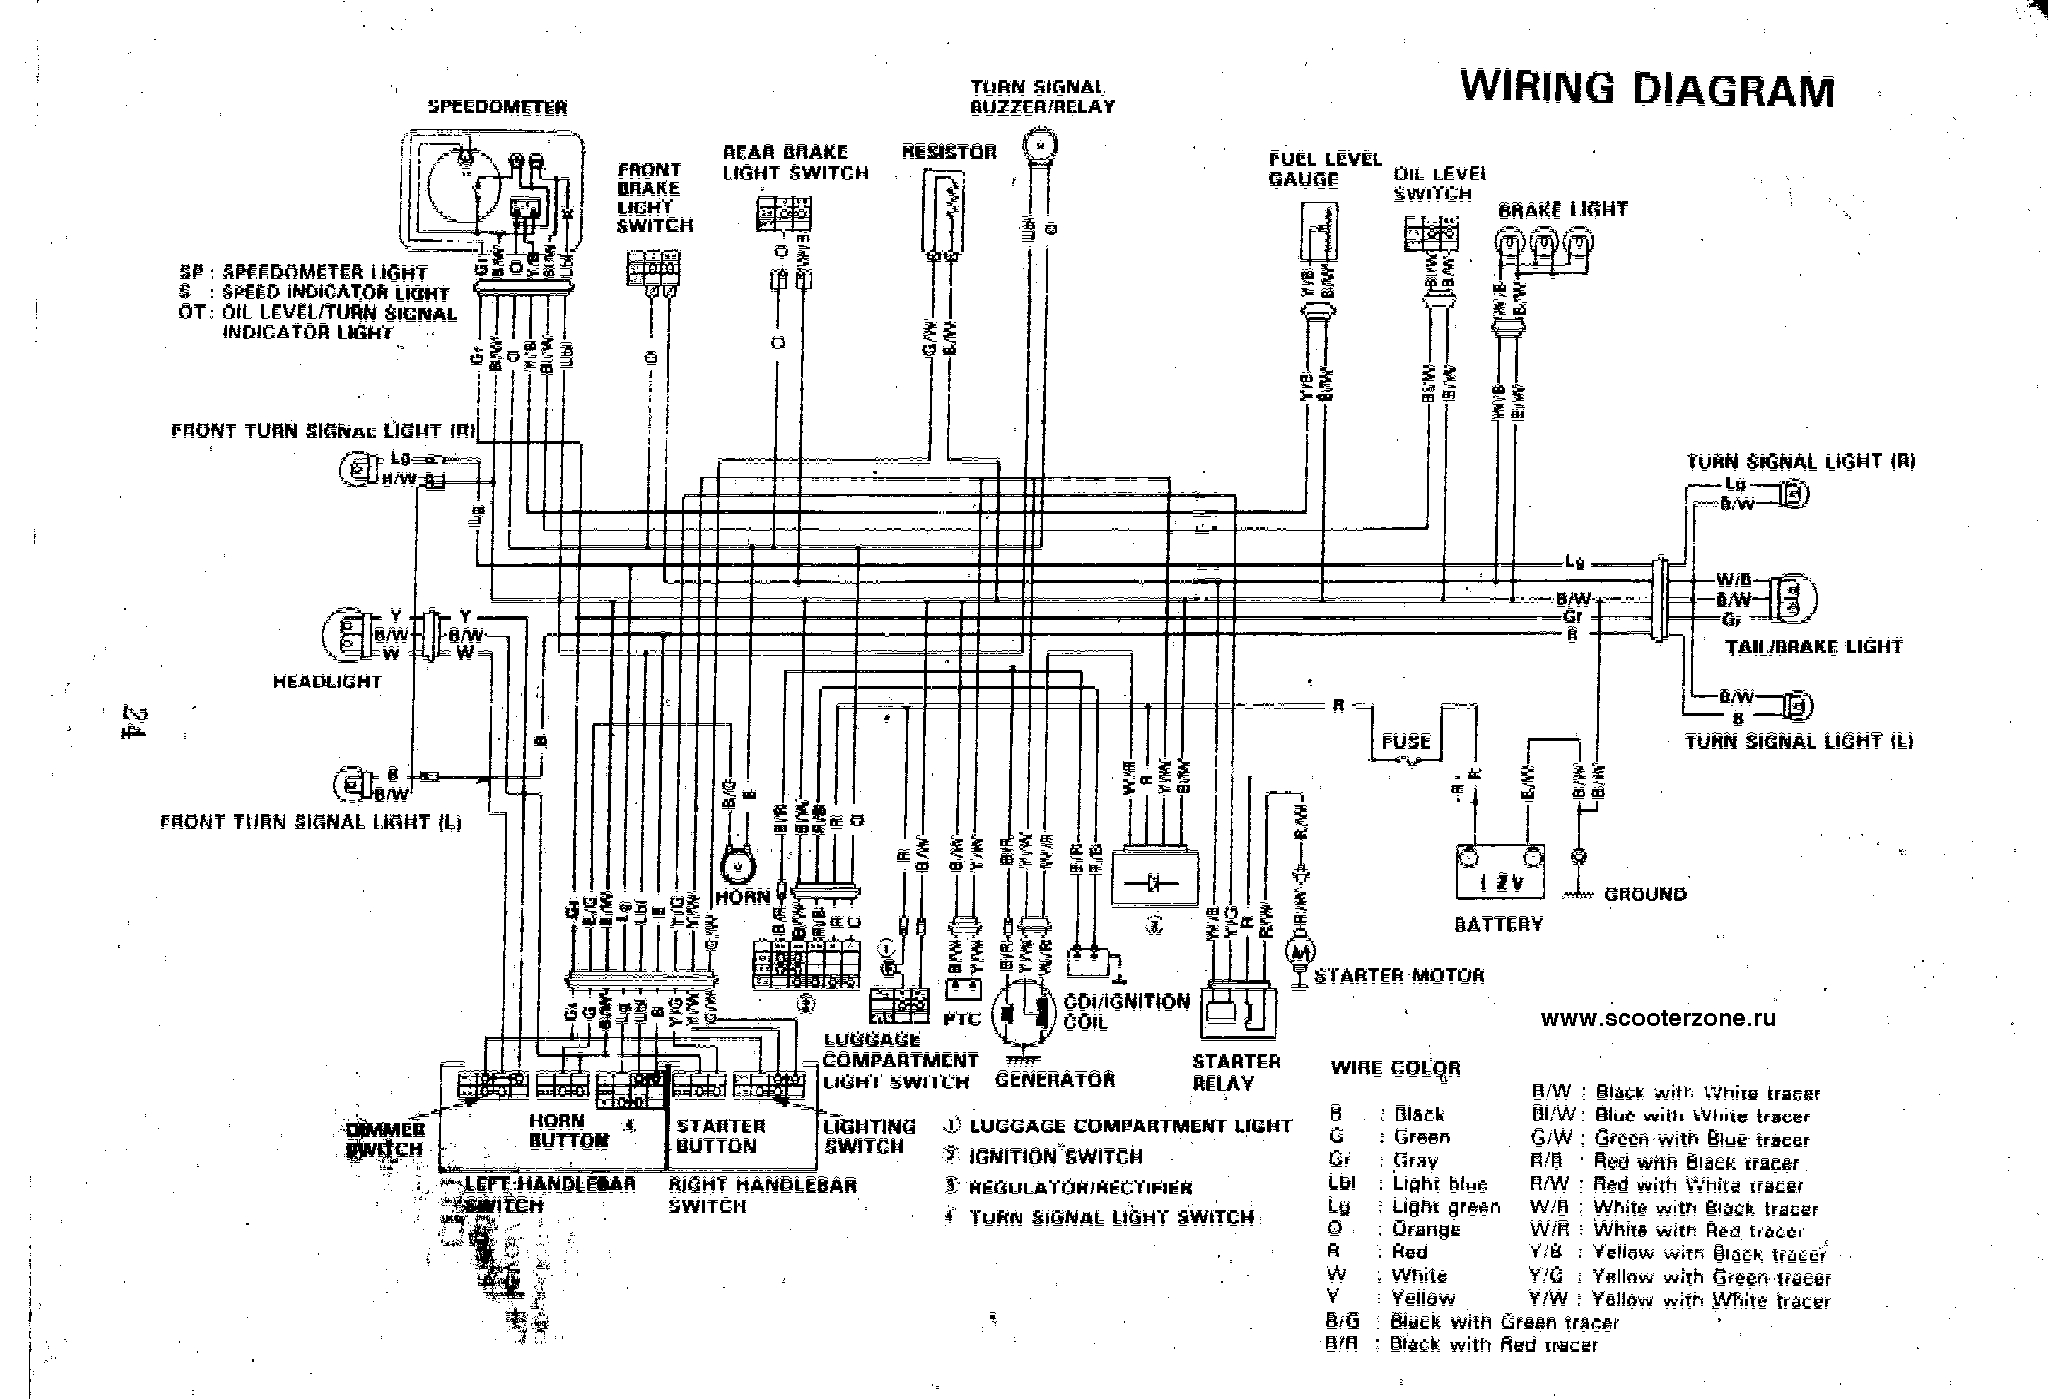 T2395 Kia Spectra My Fuel Pump Is Not Getting Power moreover Civic Si Fuse Box Diagram besides Wiring Diagram For Infinity 36670  lifier additionally 07 Kia Rio Wiring Diagrams moreover 224377 Cadillac Catera Radio Fuse. on 2005 kia sorento radio wiring diagram